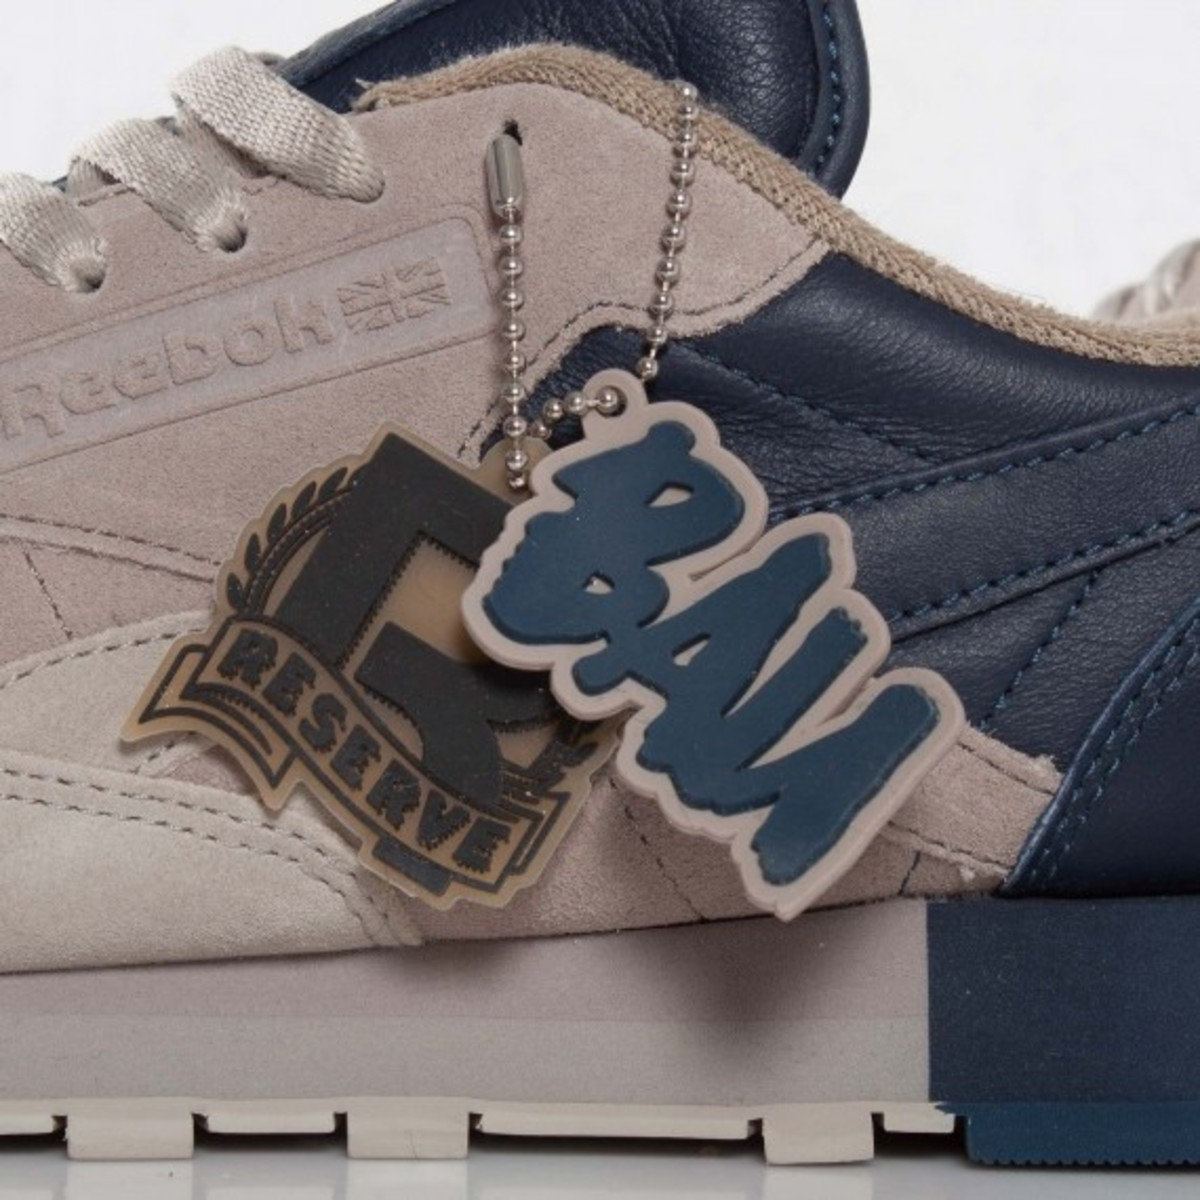 frank-the-butcher-reebok-classic-leather-lux-14